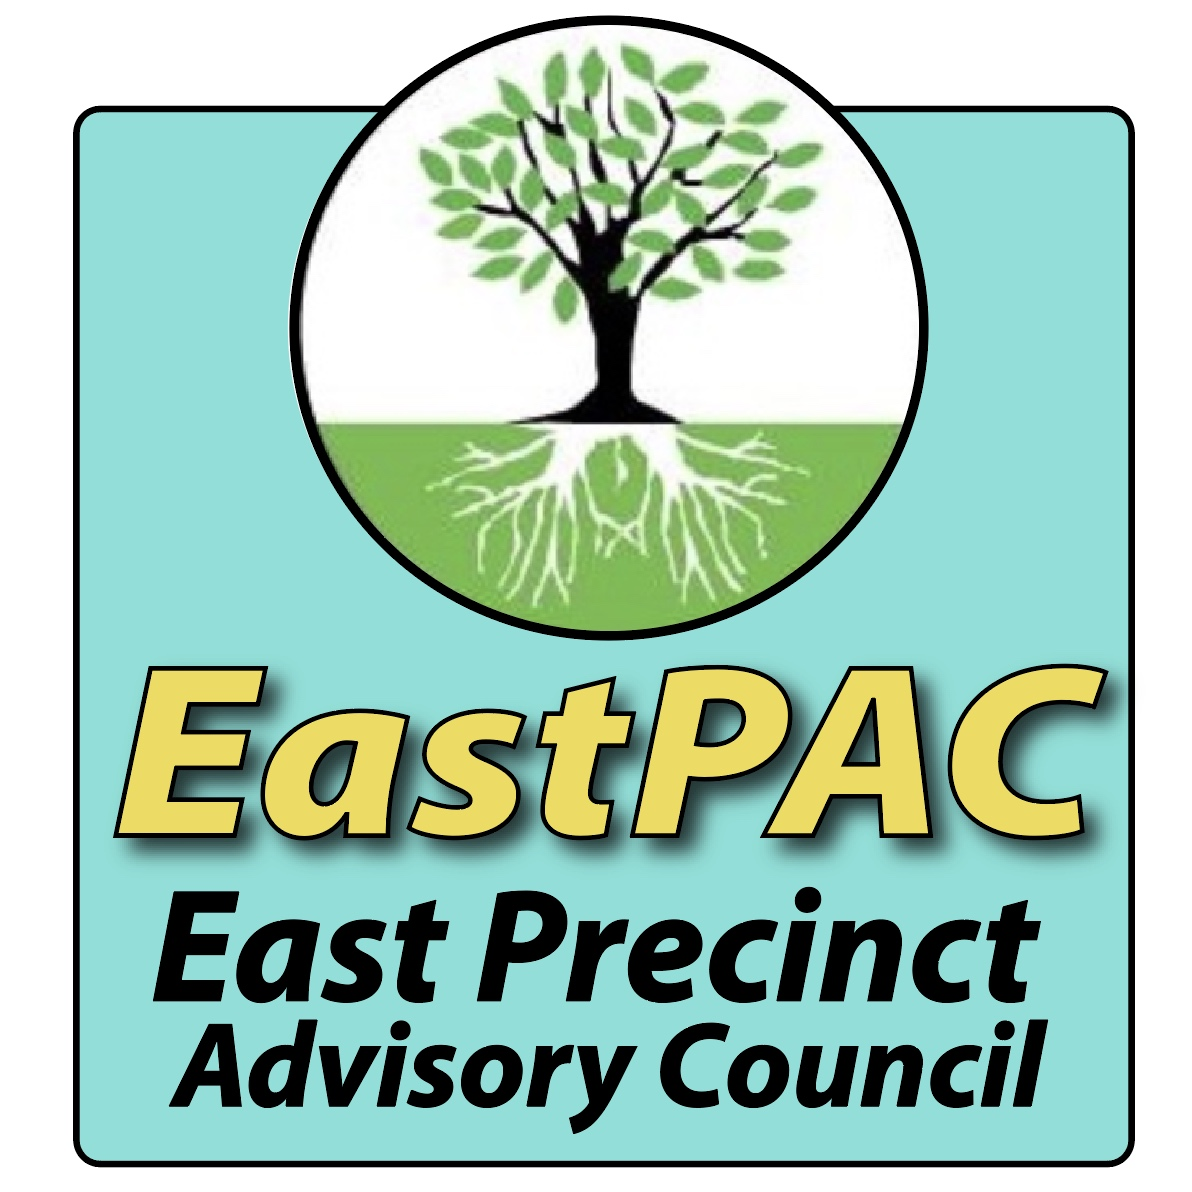 Community Partnerships - EASTPAC (East Precinct Advisory Council), A volunteer community organization that provides a forum to resolve public safety priorities; evaluate, advocate and facilitate strategies that reduce crime and improve life quality, for the East Precinct, actively partnering with law enforcement and other entities to address barriers to these outcomes. Open public meetings, held the fourth Thursday of each month, are attended by citizens and community stakeholders and law enforcement command staff to discuss and resolve public safety and life quality concerns.